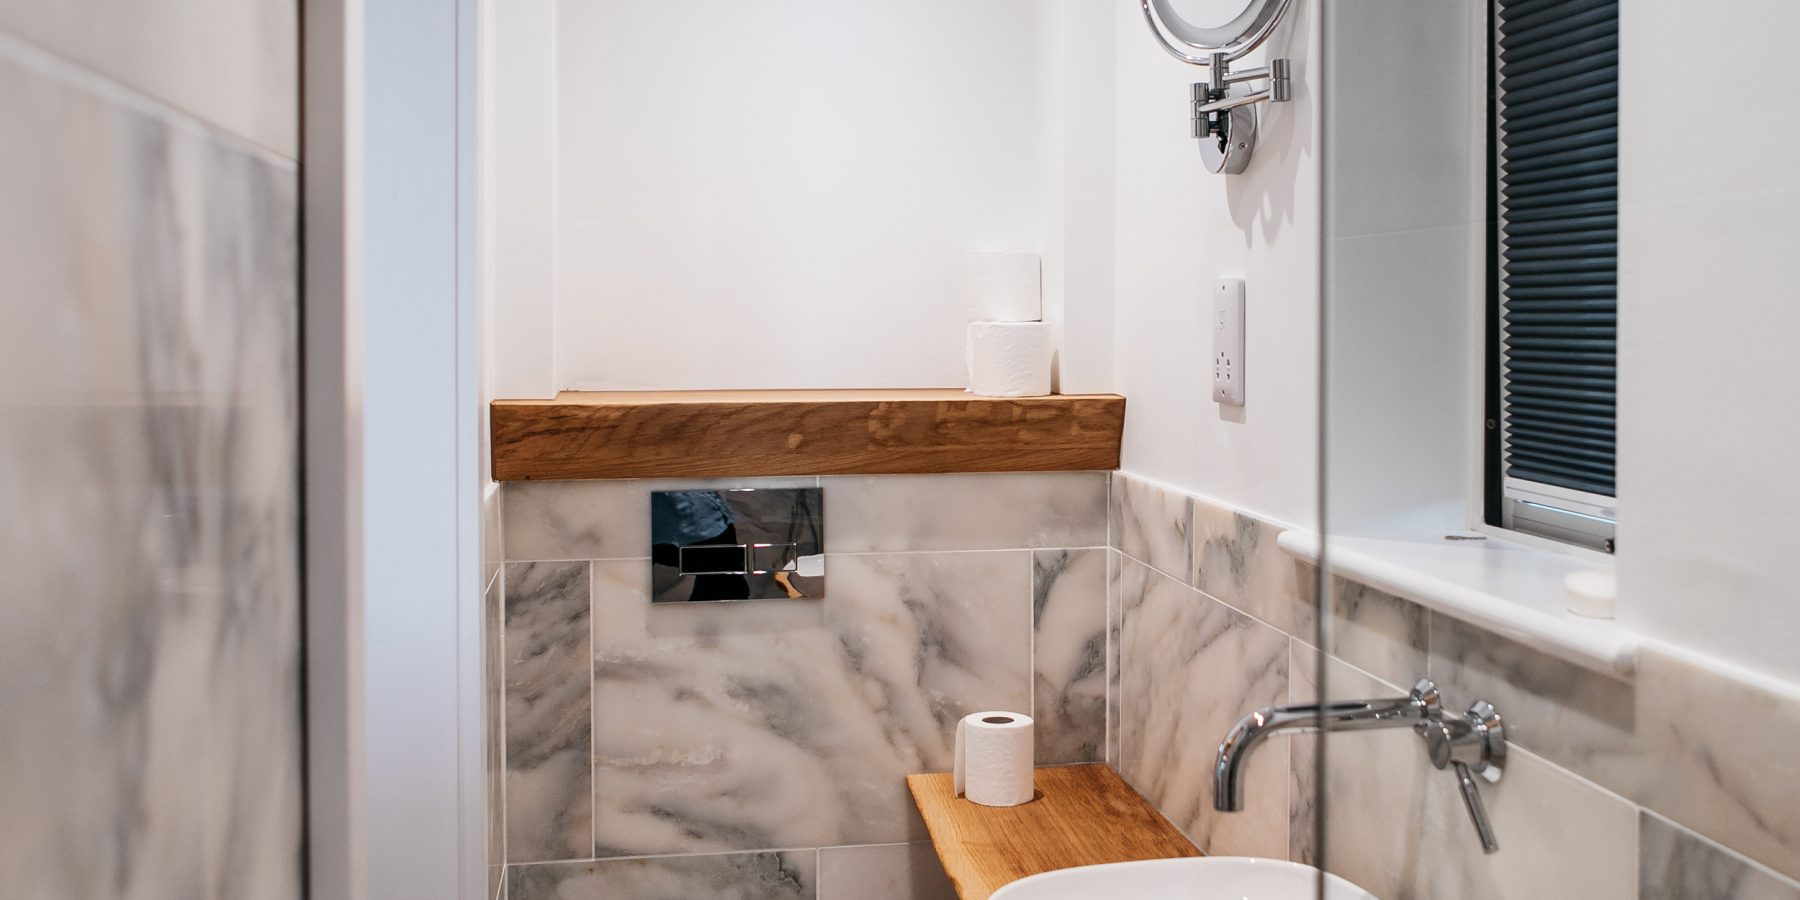 Thumbnail of http://Washroom%20with%20white%20toilet%20and%20basin